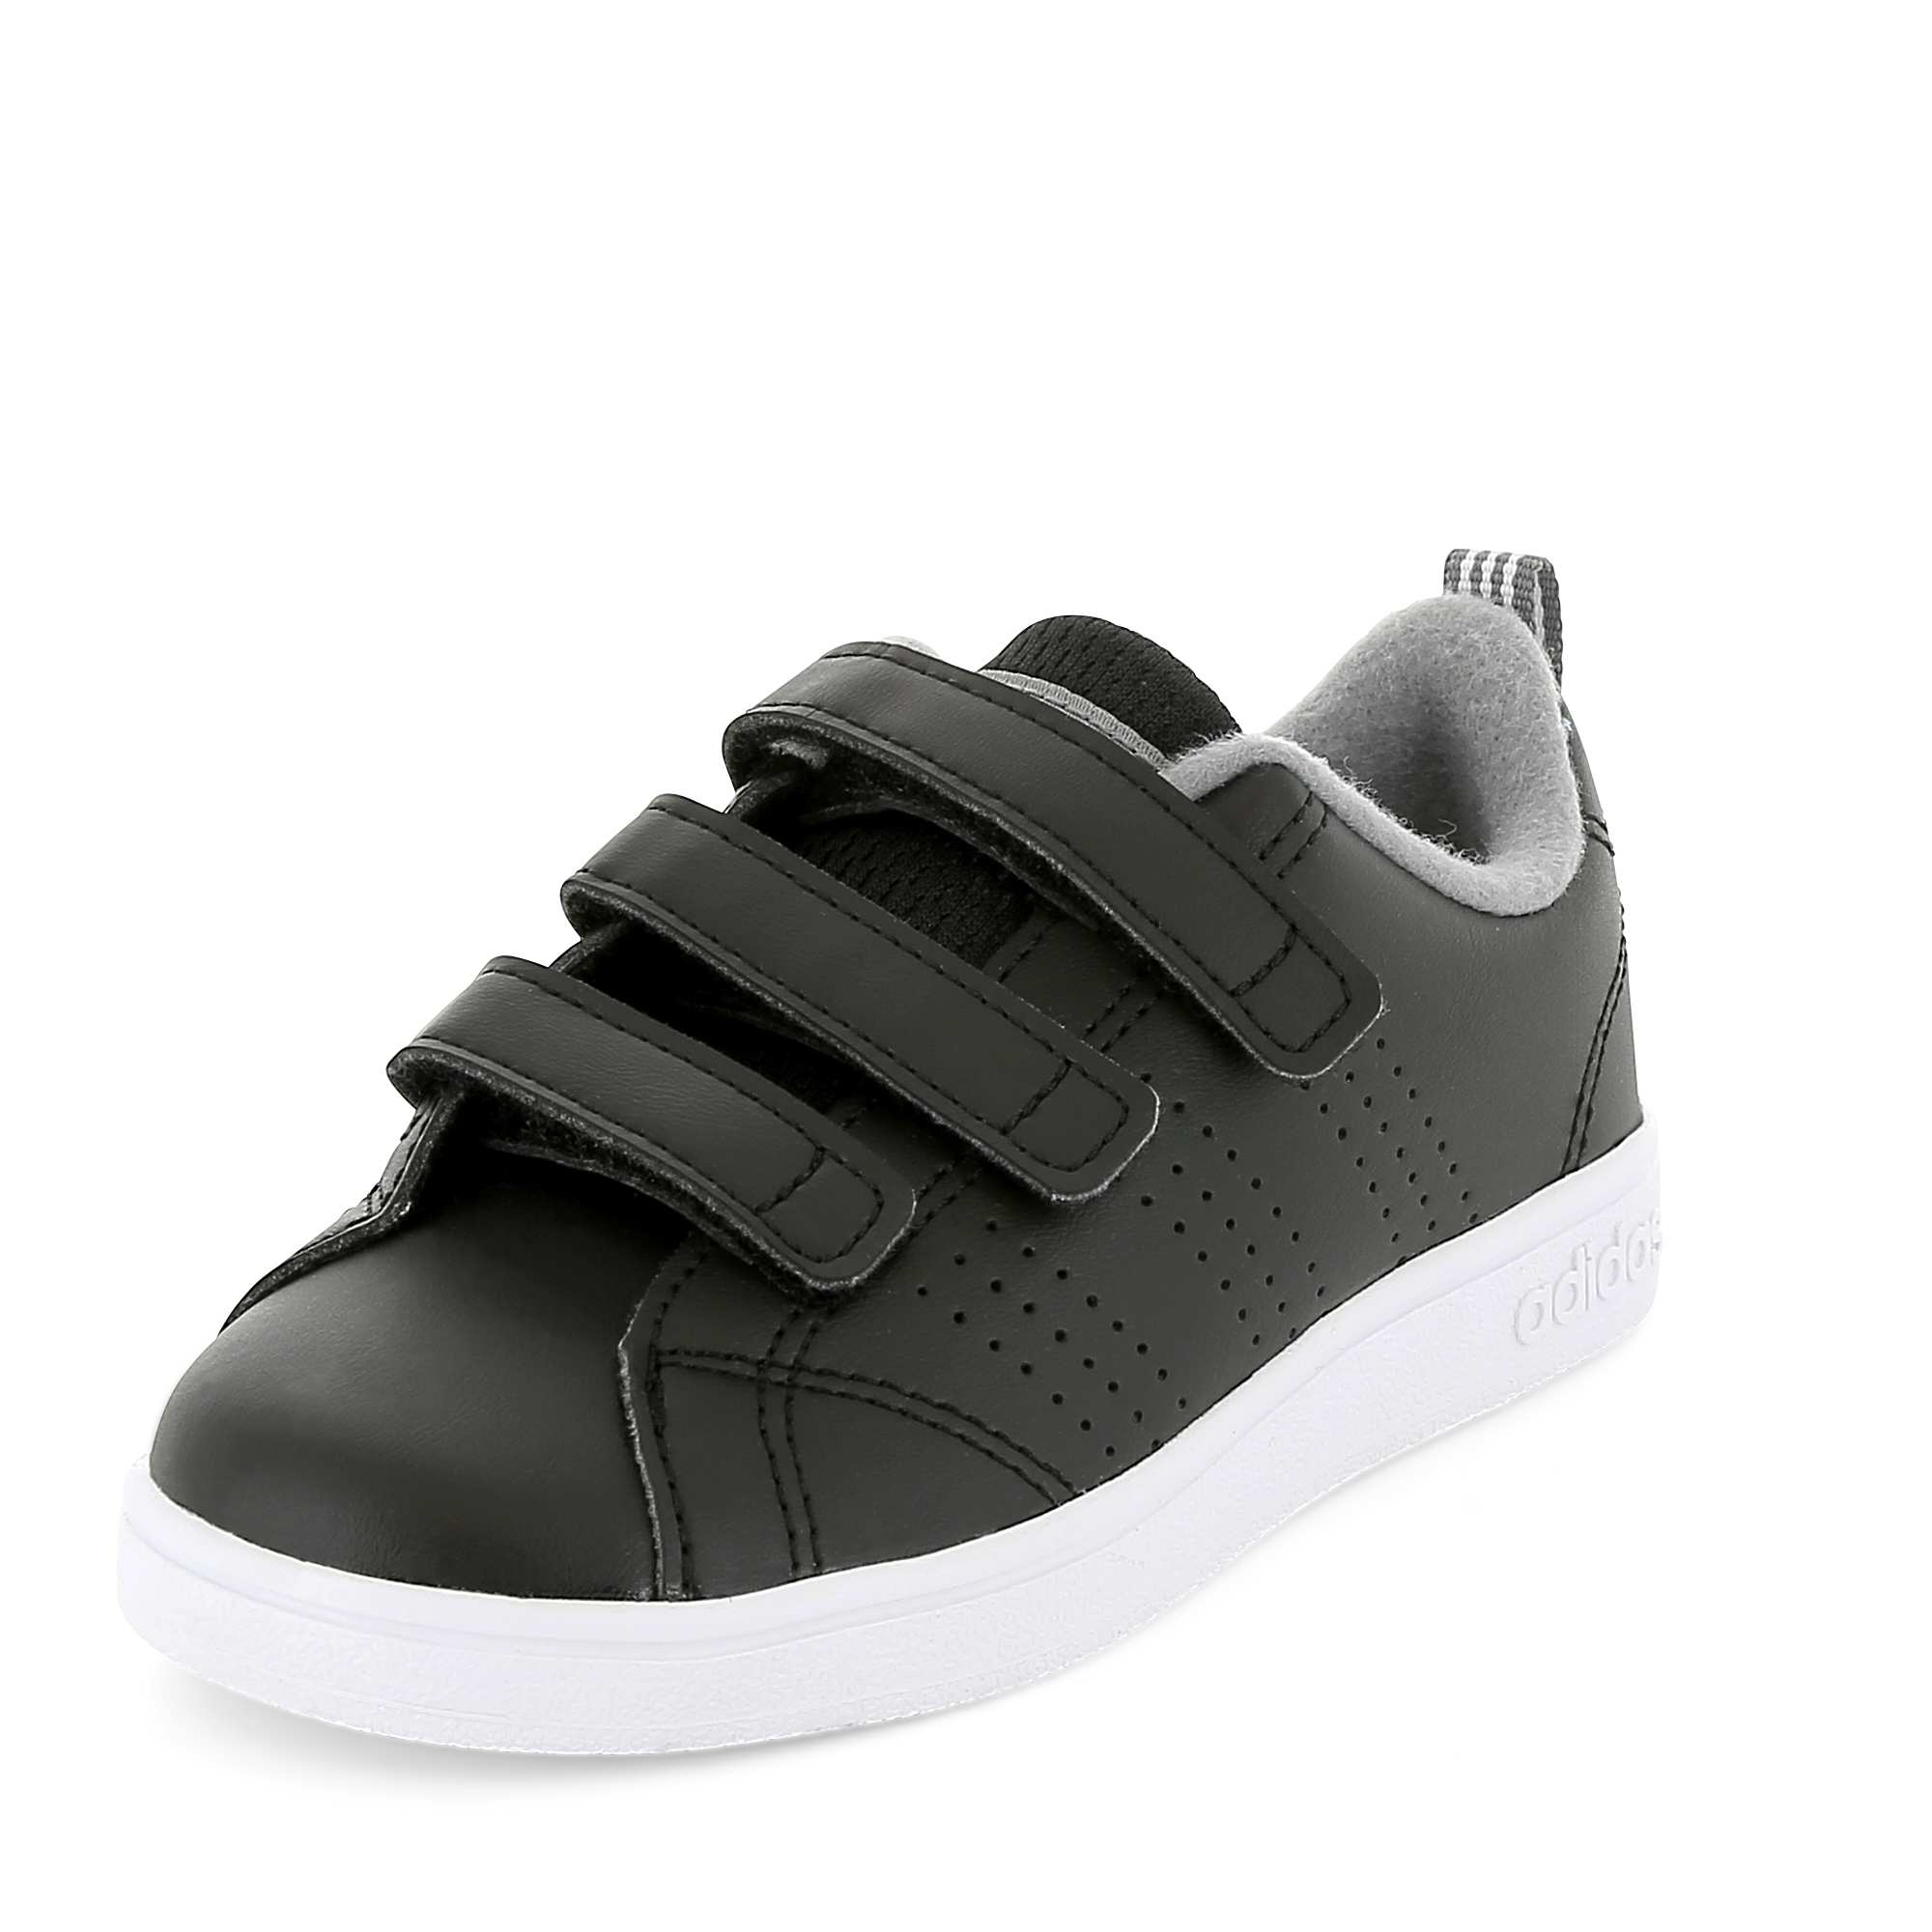 buy online 80055 f816f Baskets Adidas VS Advantage Clean à scratchs noir Garçon. Loading zoom